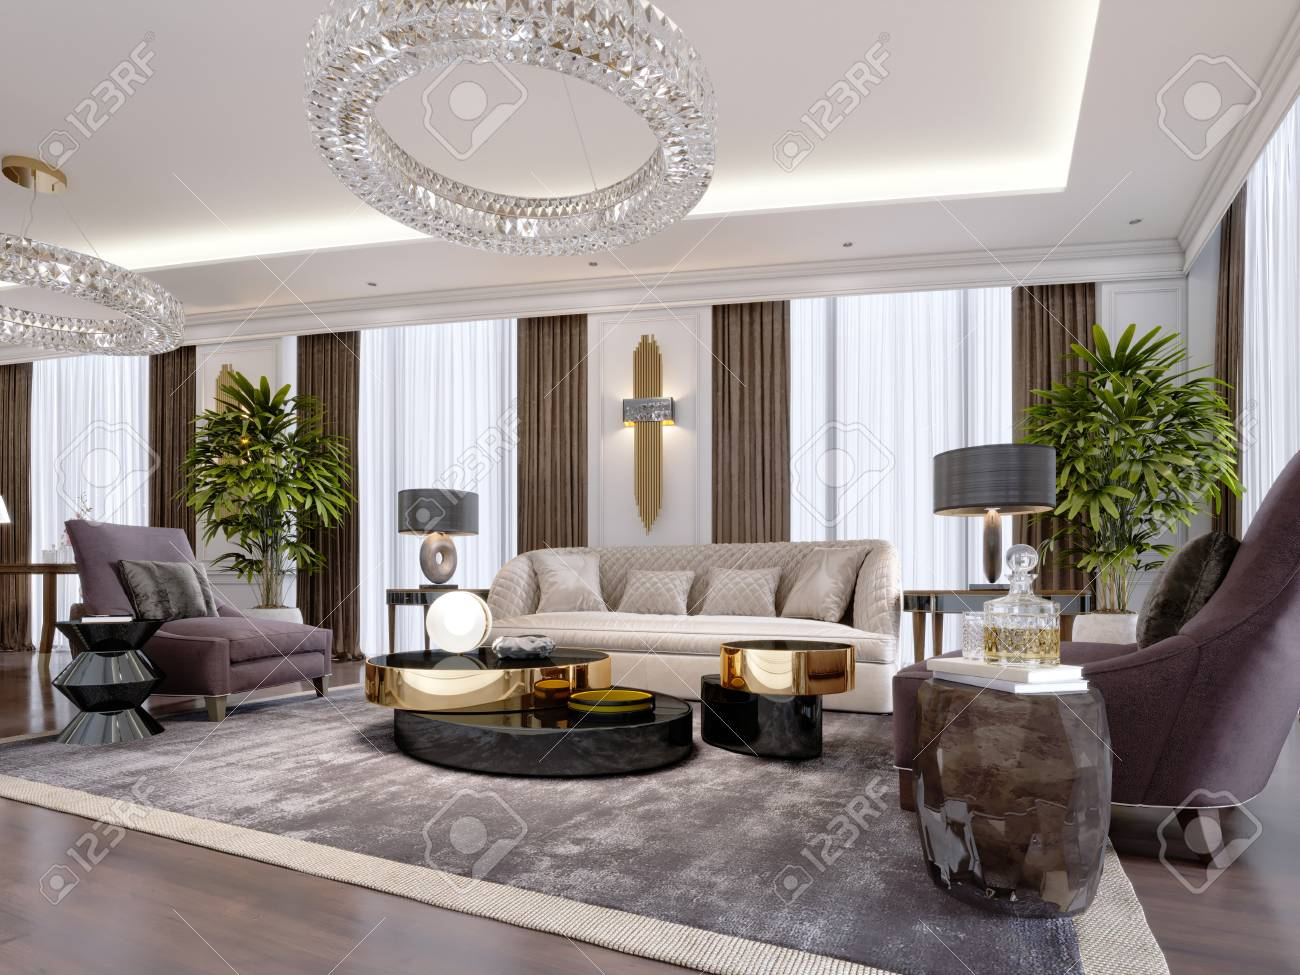 Design of luxury apartments in modern style with designer furniture..